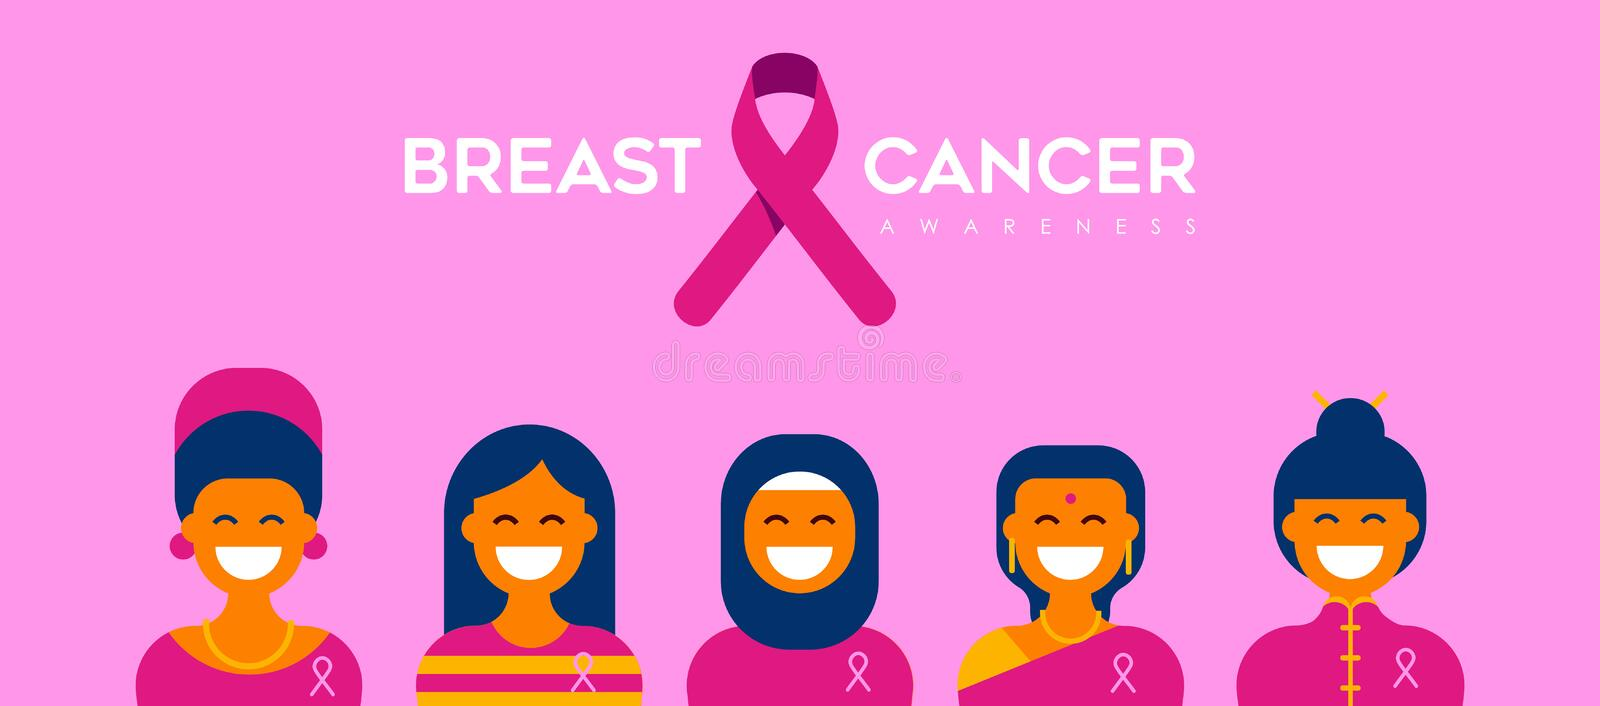 Breast Cancer Care diverse girl group for support. Breast Cancer Awareness banner illustration for help and support. Diverse woman group of mixed cultures with stock illustration